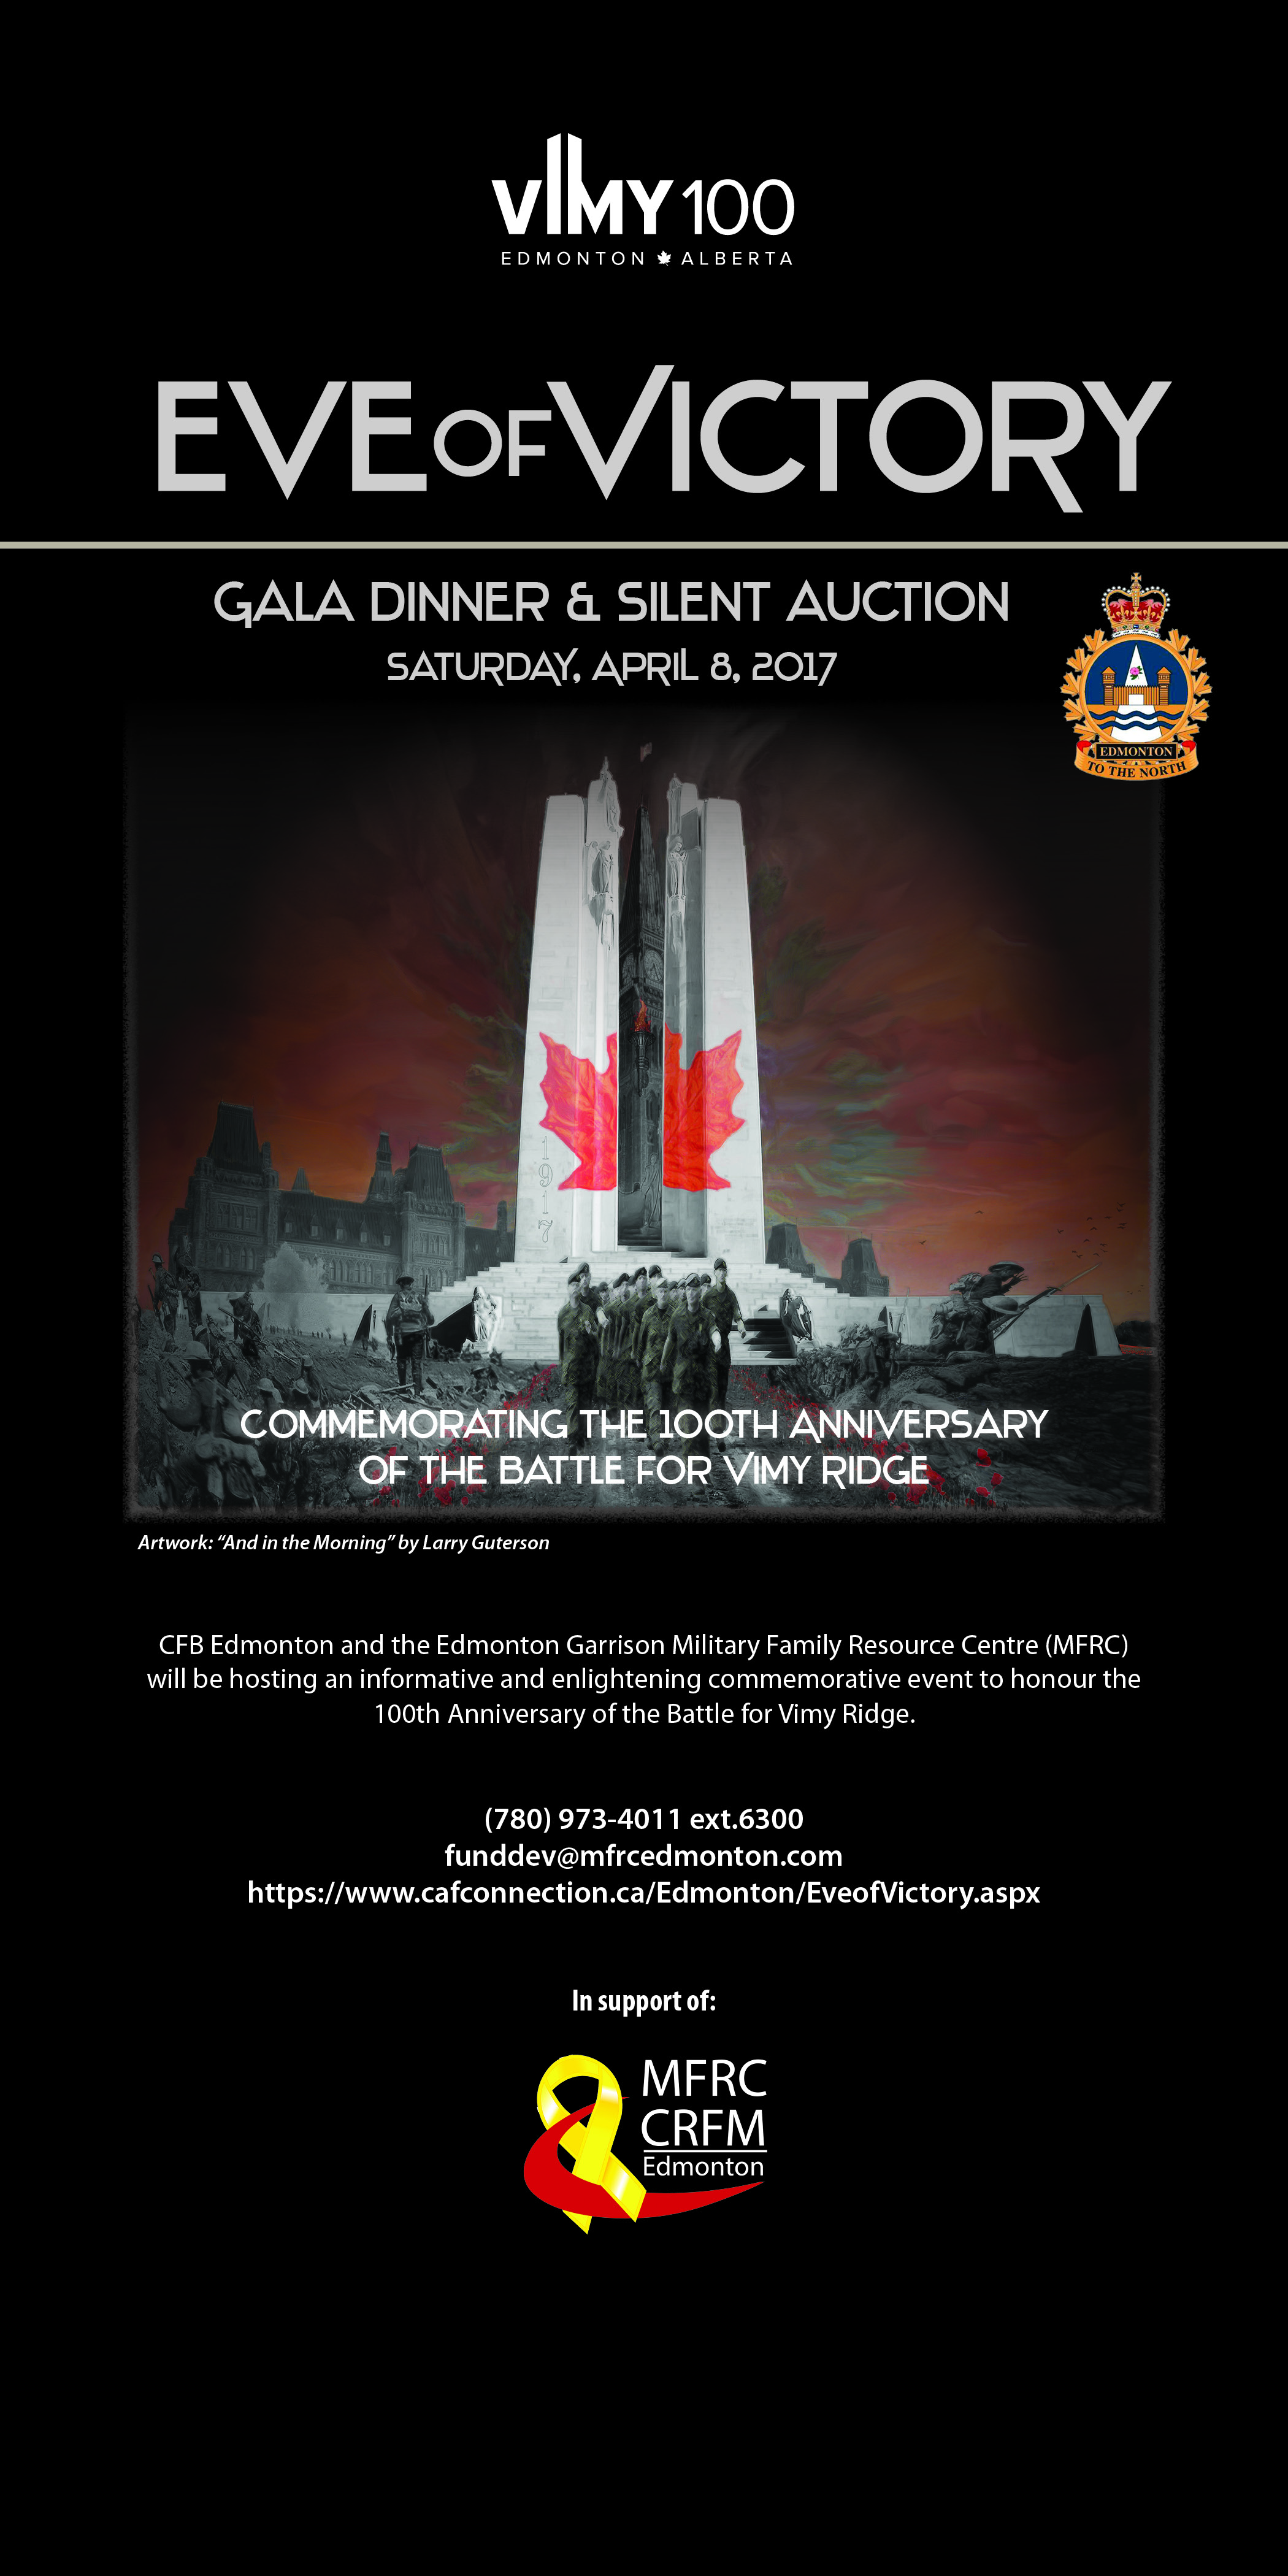 April 8, Edmonton, AB - Eve of Victory Gala Dinner and Silent Auction